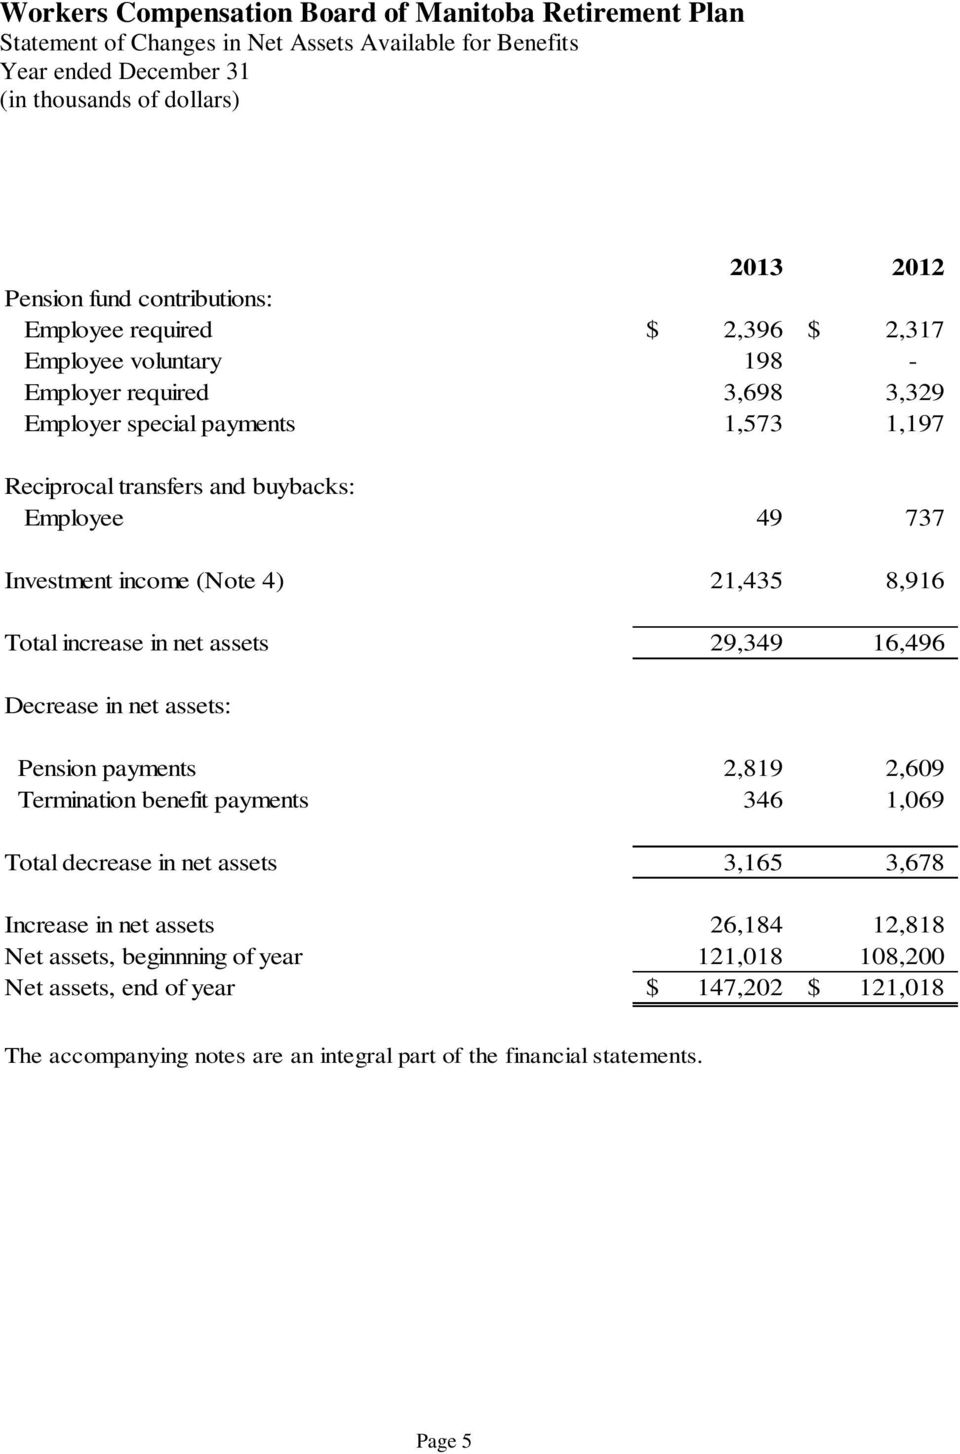 assets 29,349 16,496 Decrease in net assets: Pension payments 2,819 2,609 Termination benefit payments 346 1,069 Total decrease in net assets 3,165 3,678 Increase in net assets